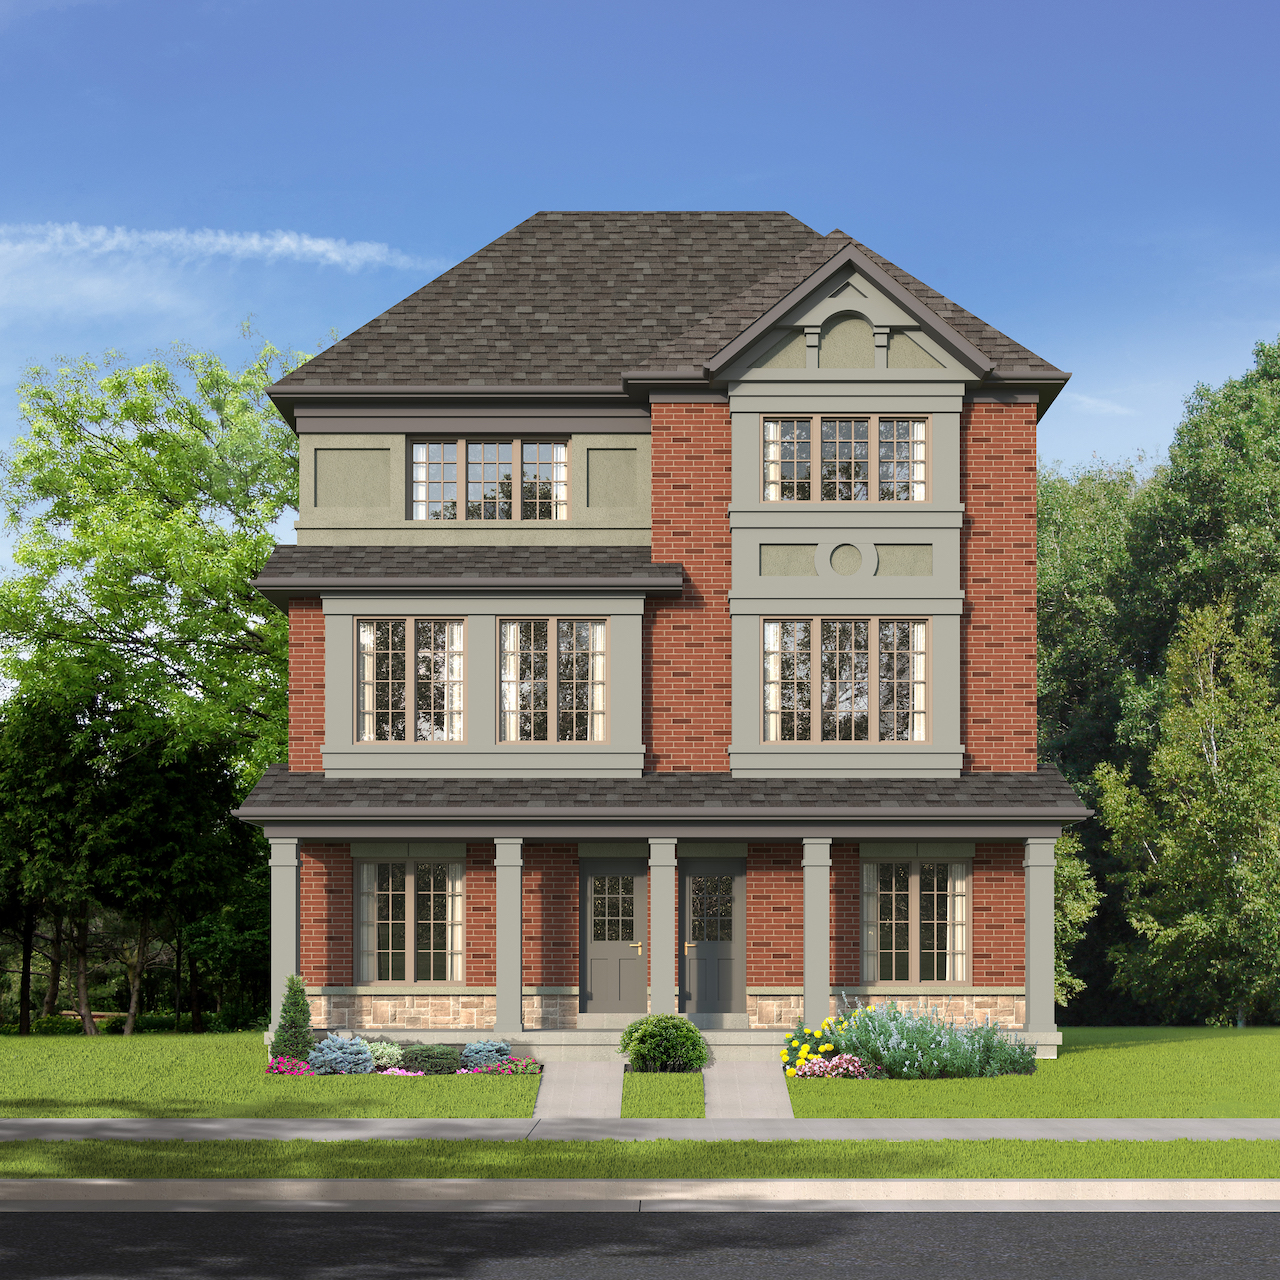 Exterior rendering of The Village at Highland Creek Semis 11-12